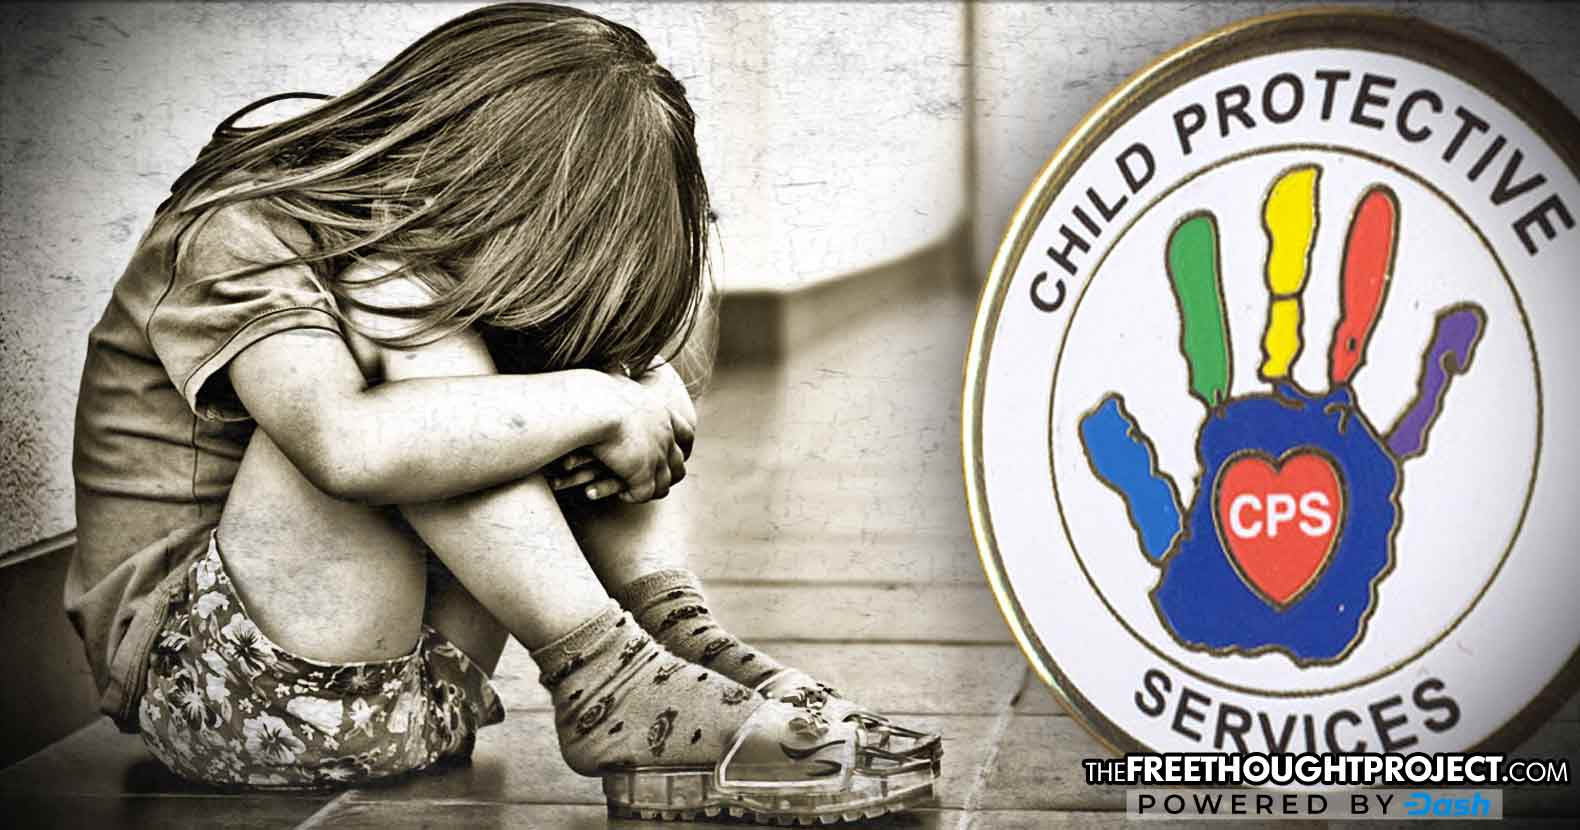 Chilling NCMEC Report Shows 88% of Missing Sex Trafficked Kids Come from US Foster Care